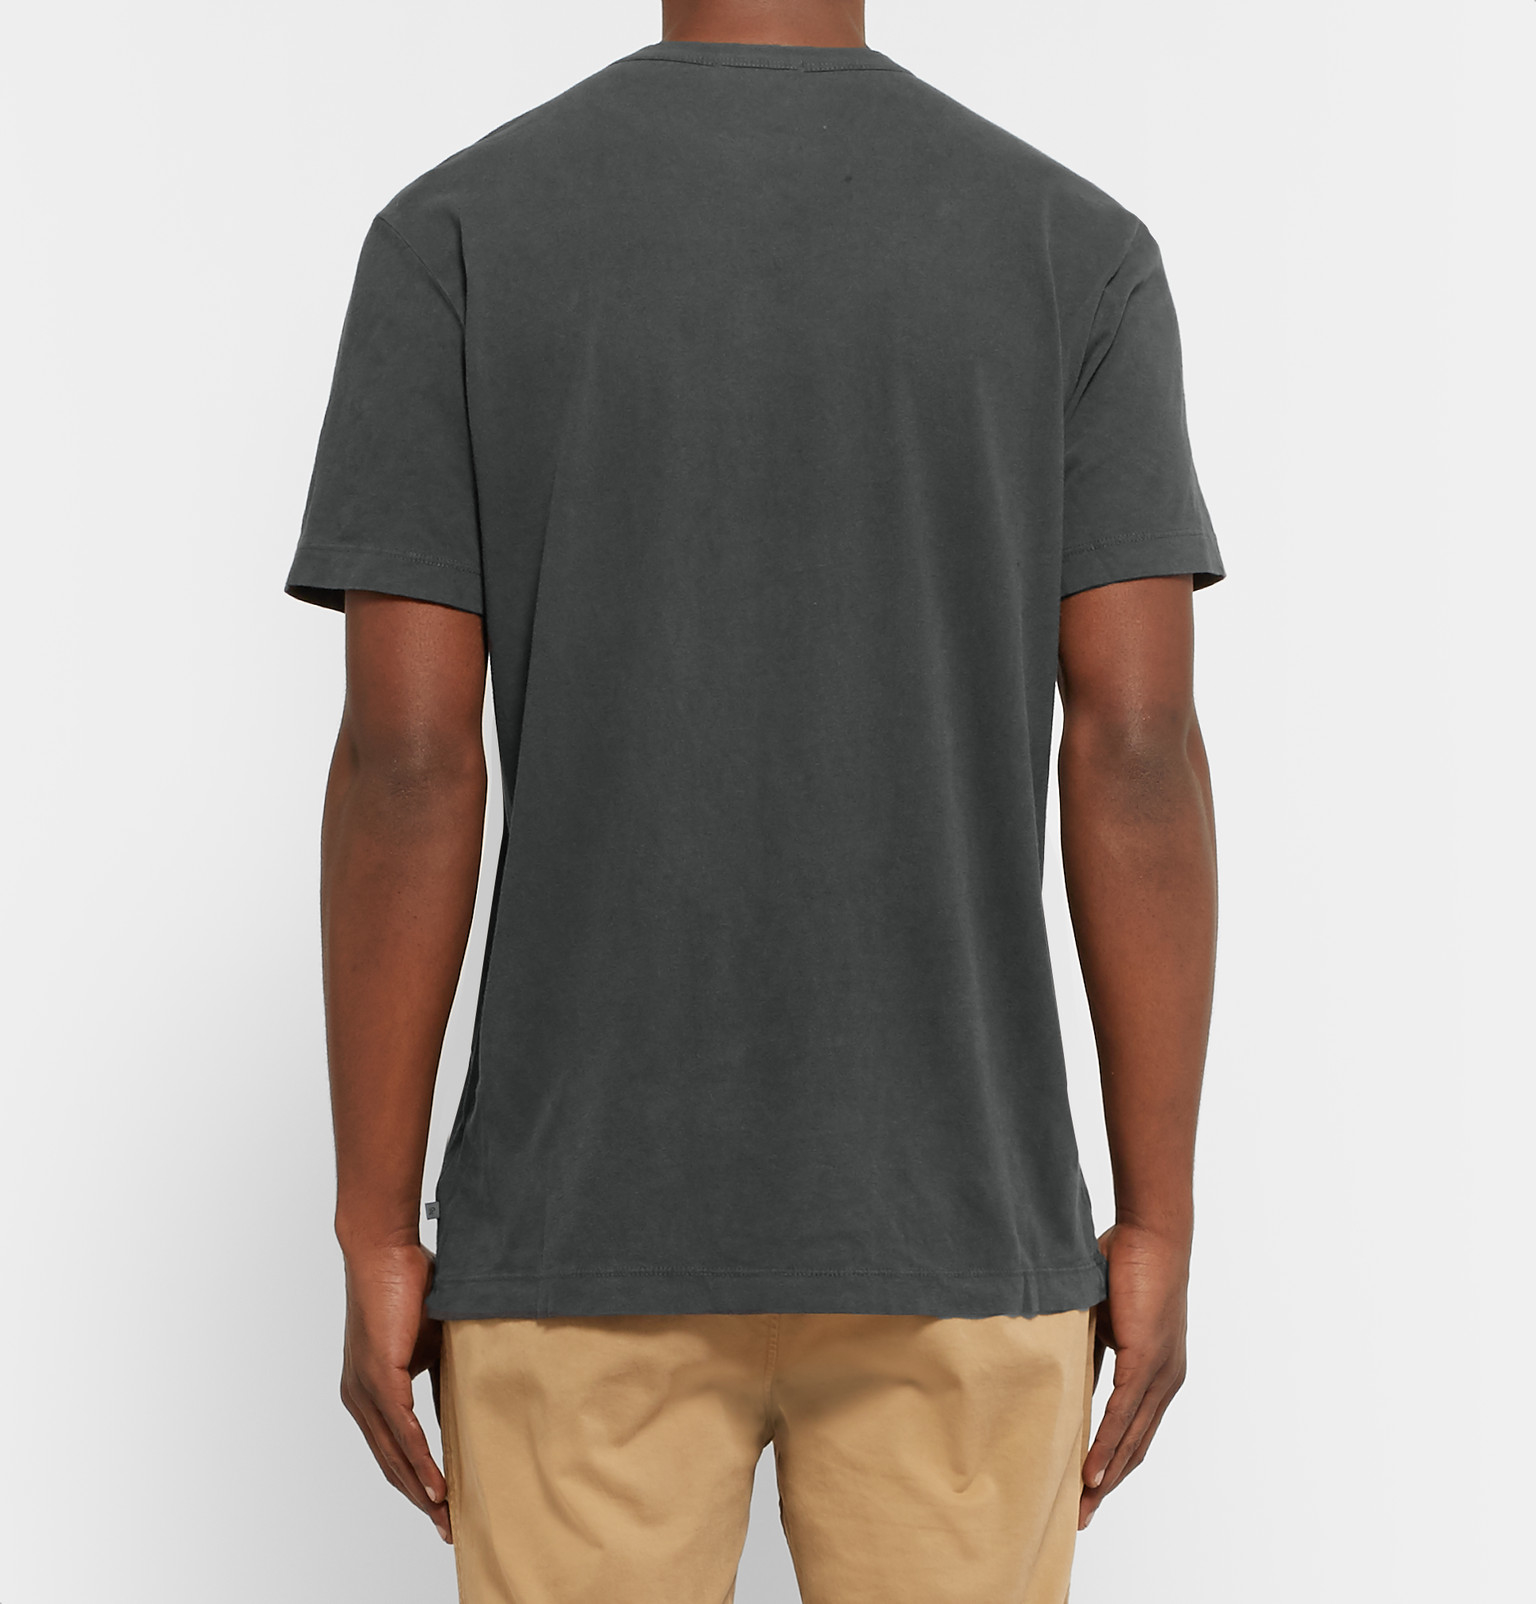 james perse cotton jersey t shirt for men lyst